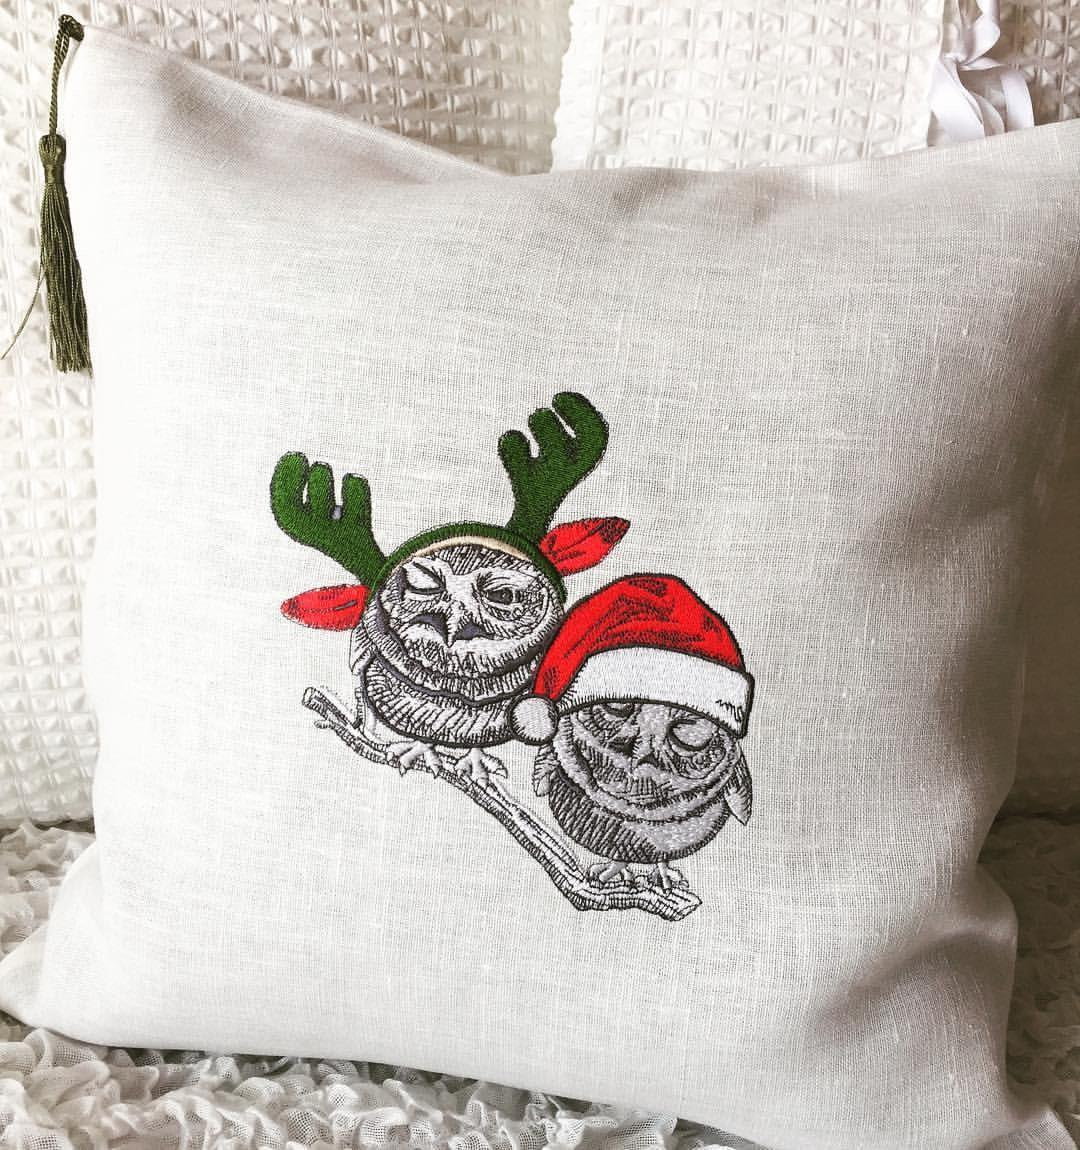 Cushion with Christmas owls embroidery design